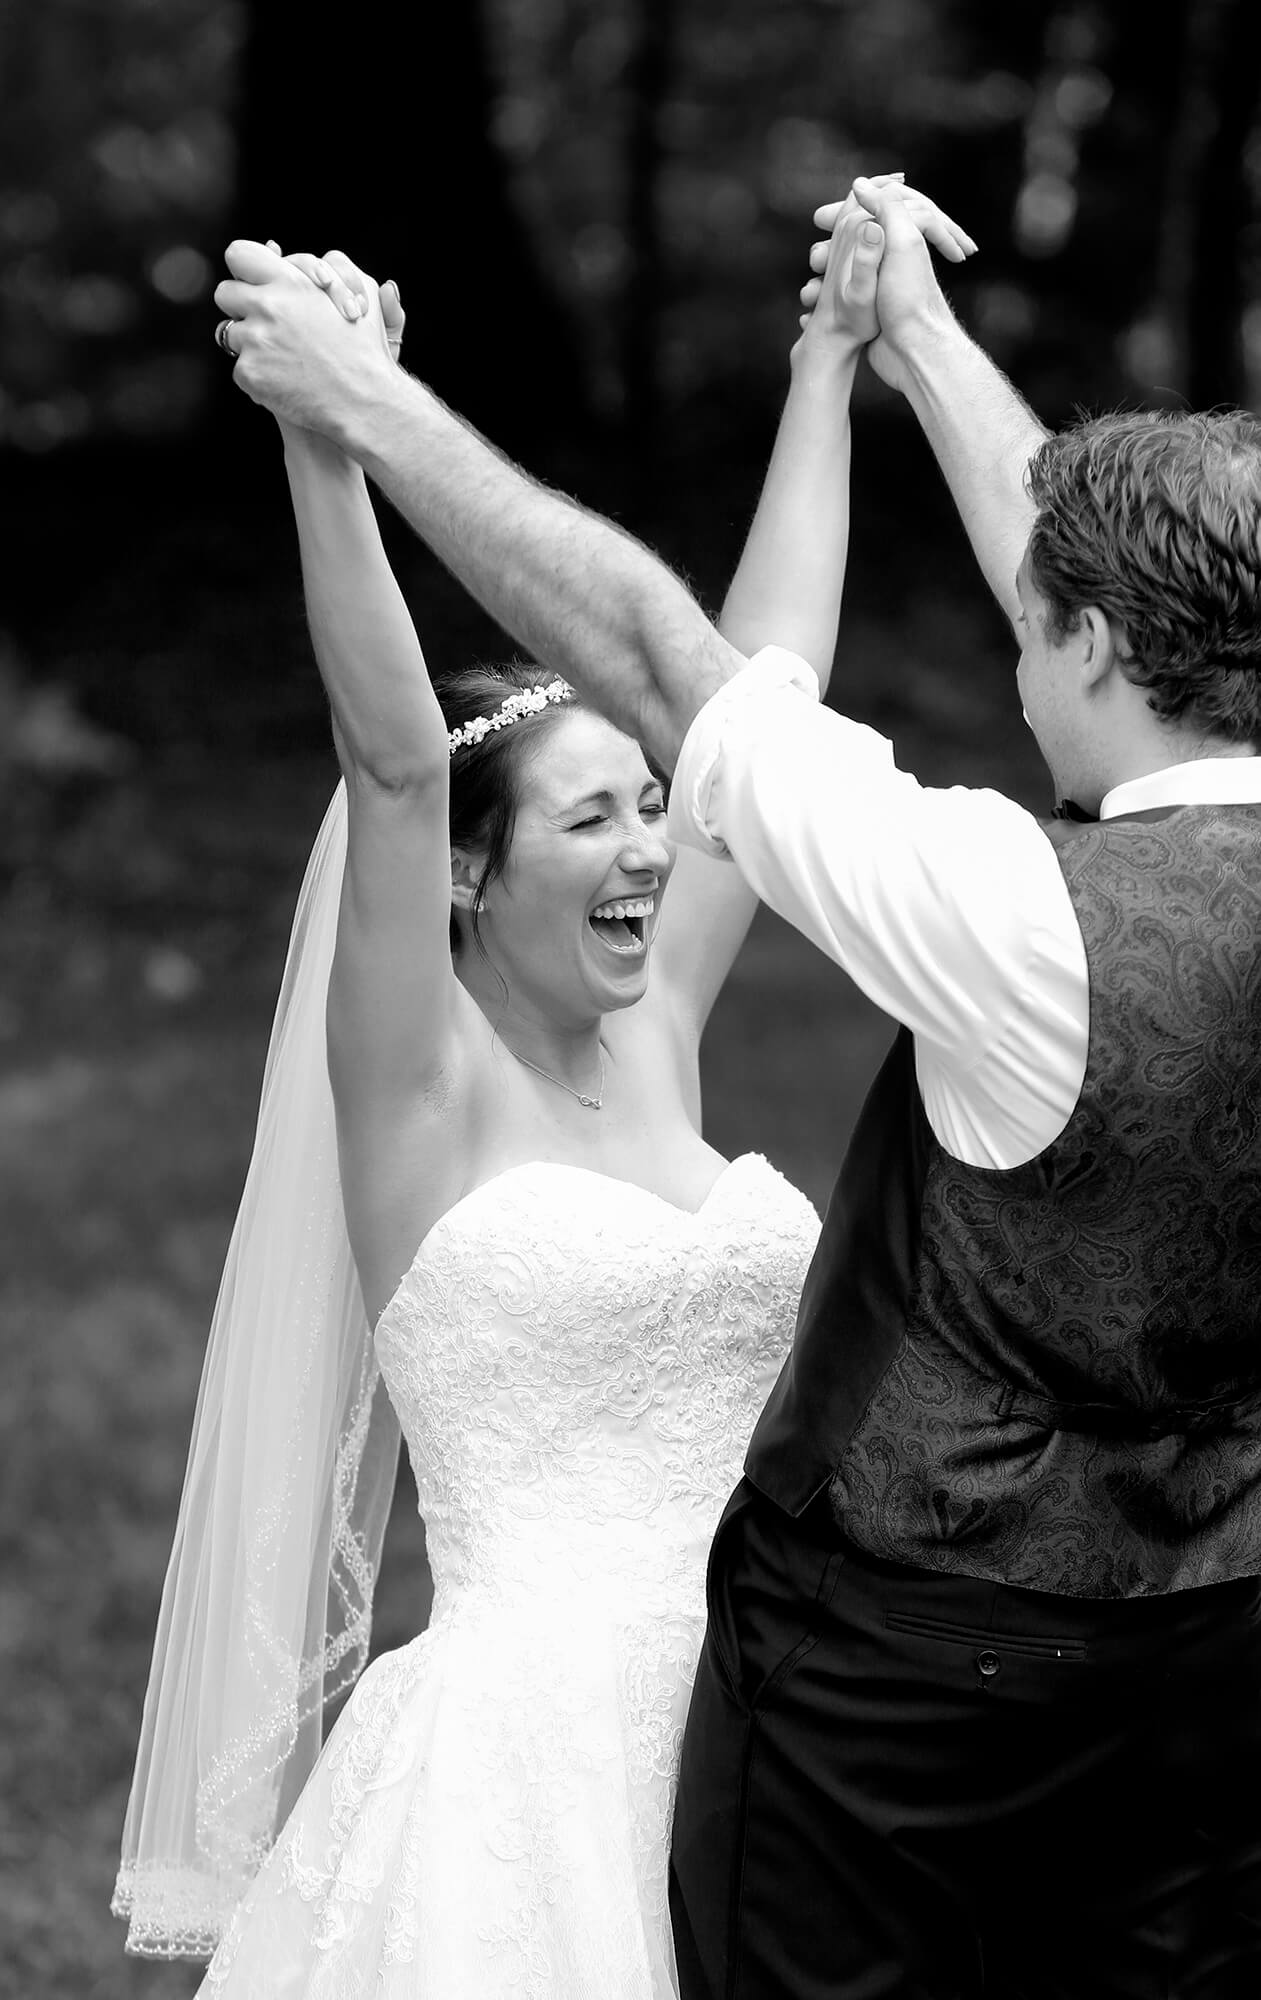 Wedding photography of the bride celebrating after the first dance with her new husband